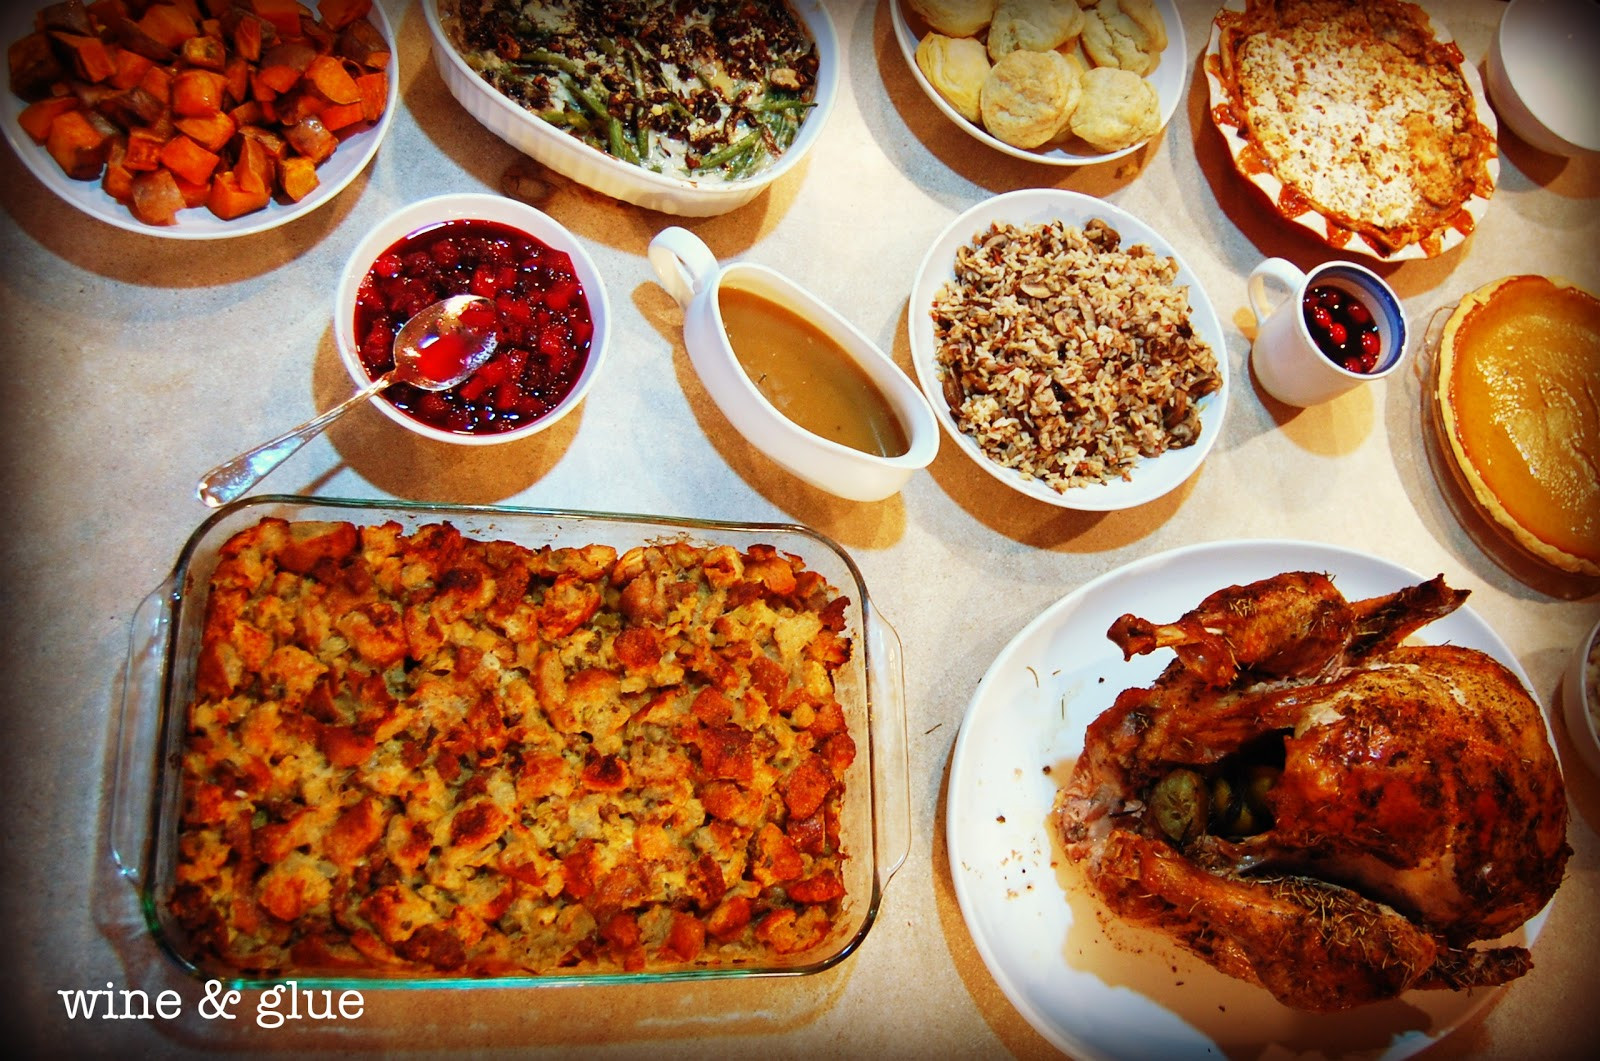 Best Roast Turkey Recipe For Thanksgiving  World s Best Roast Turkey Recipe Wine & Glue